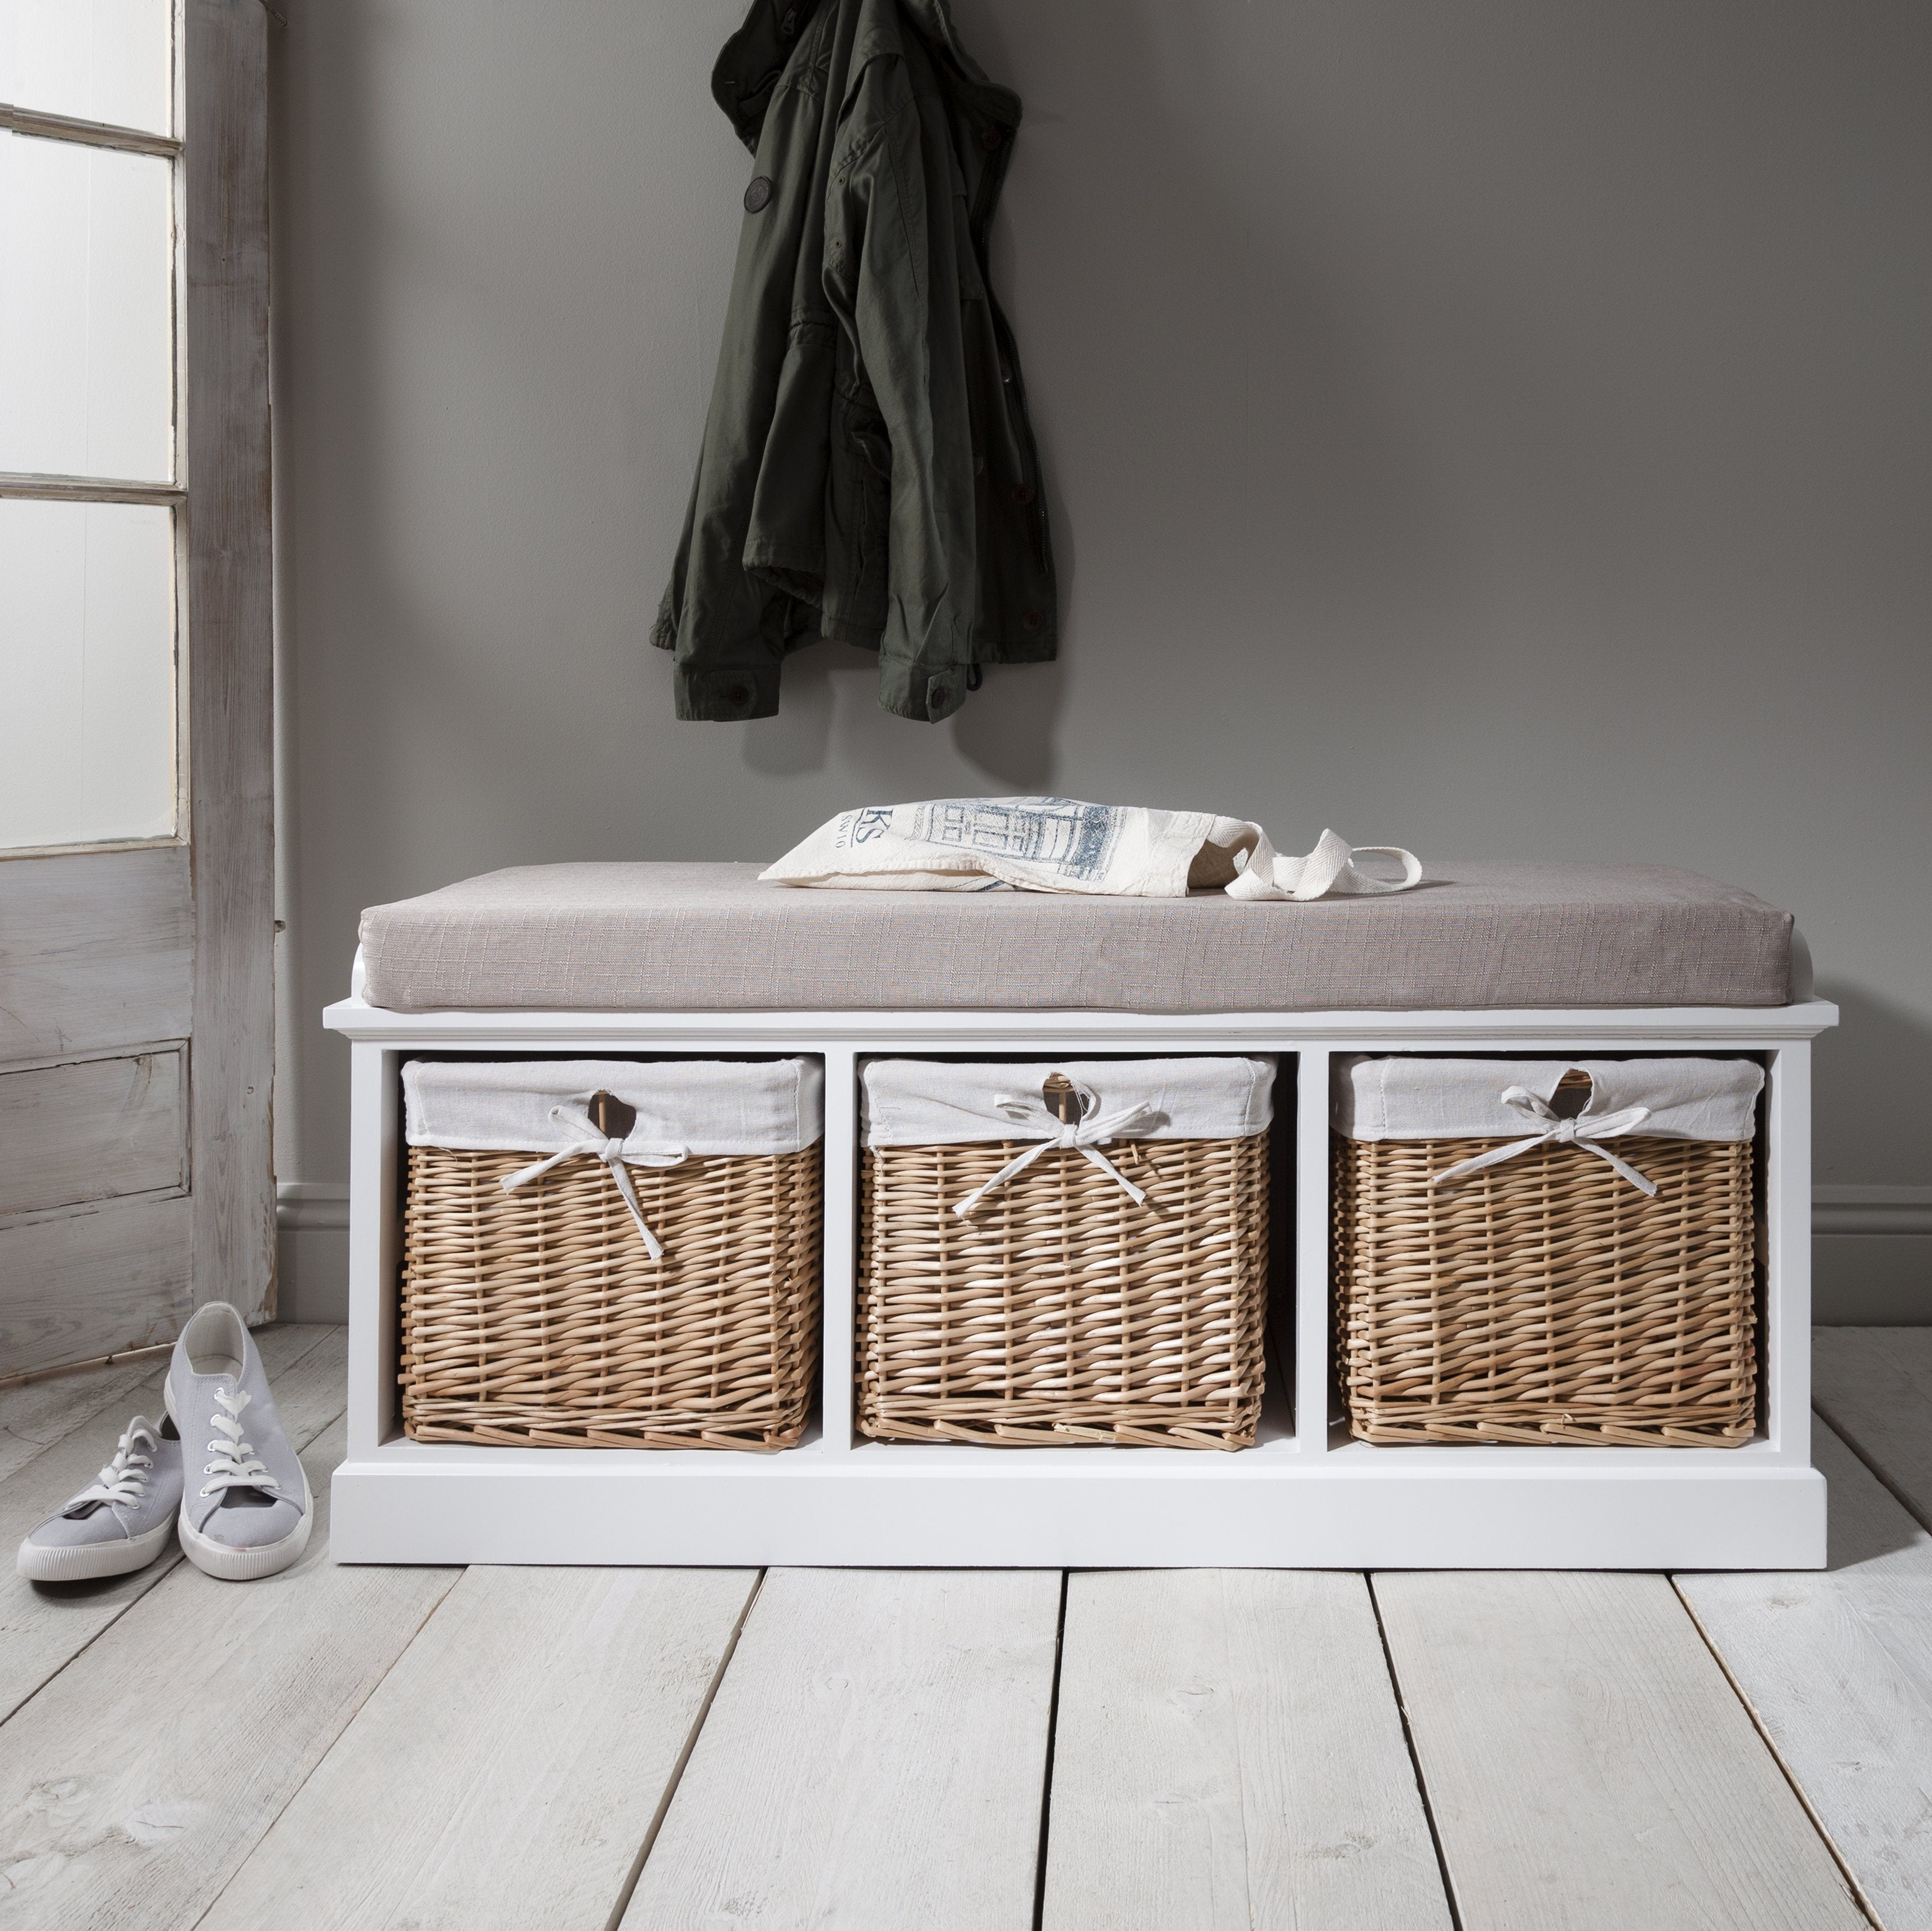 Fyfield Hallway Storage Bench In White With Cushion Delivery On Or B Laura James